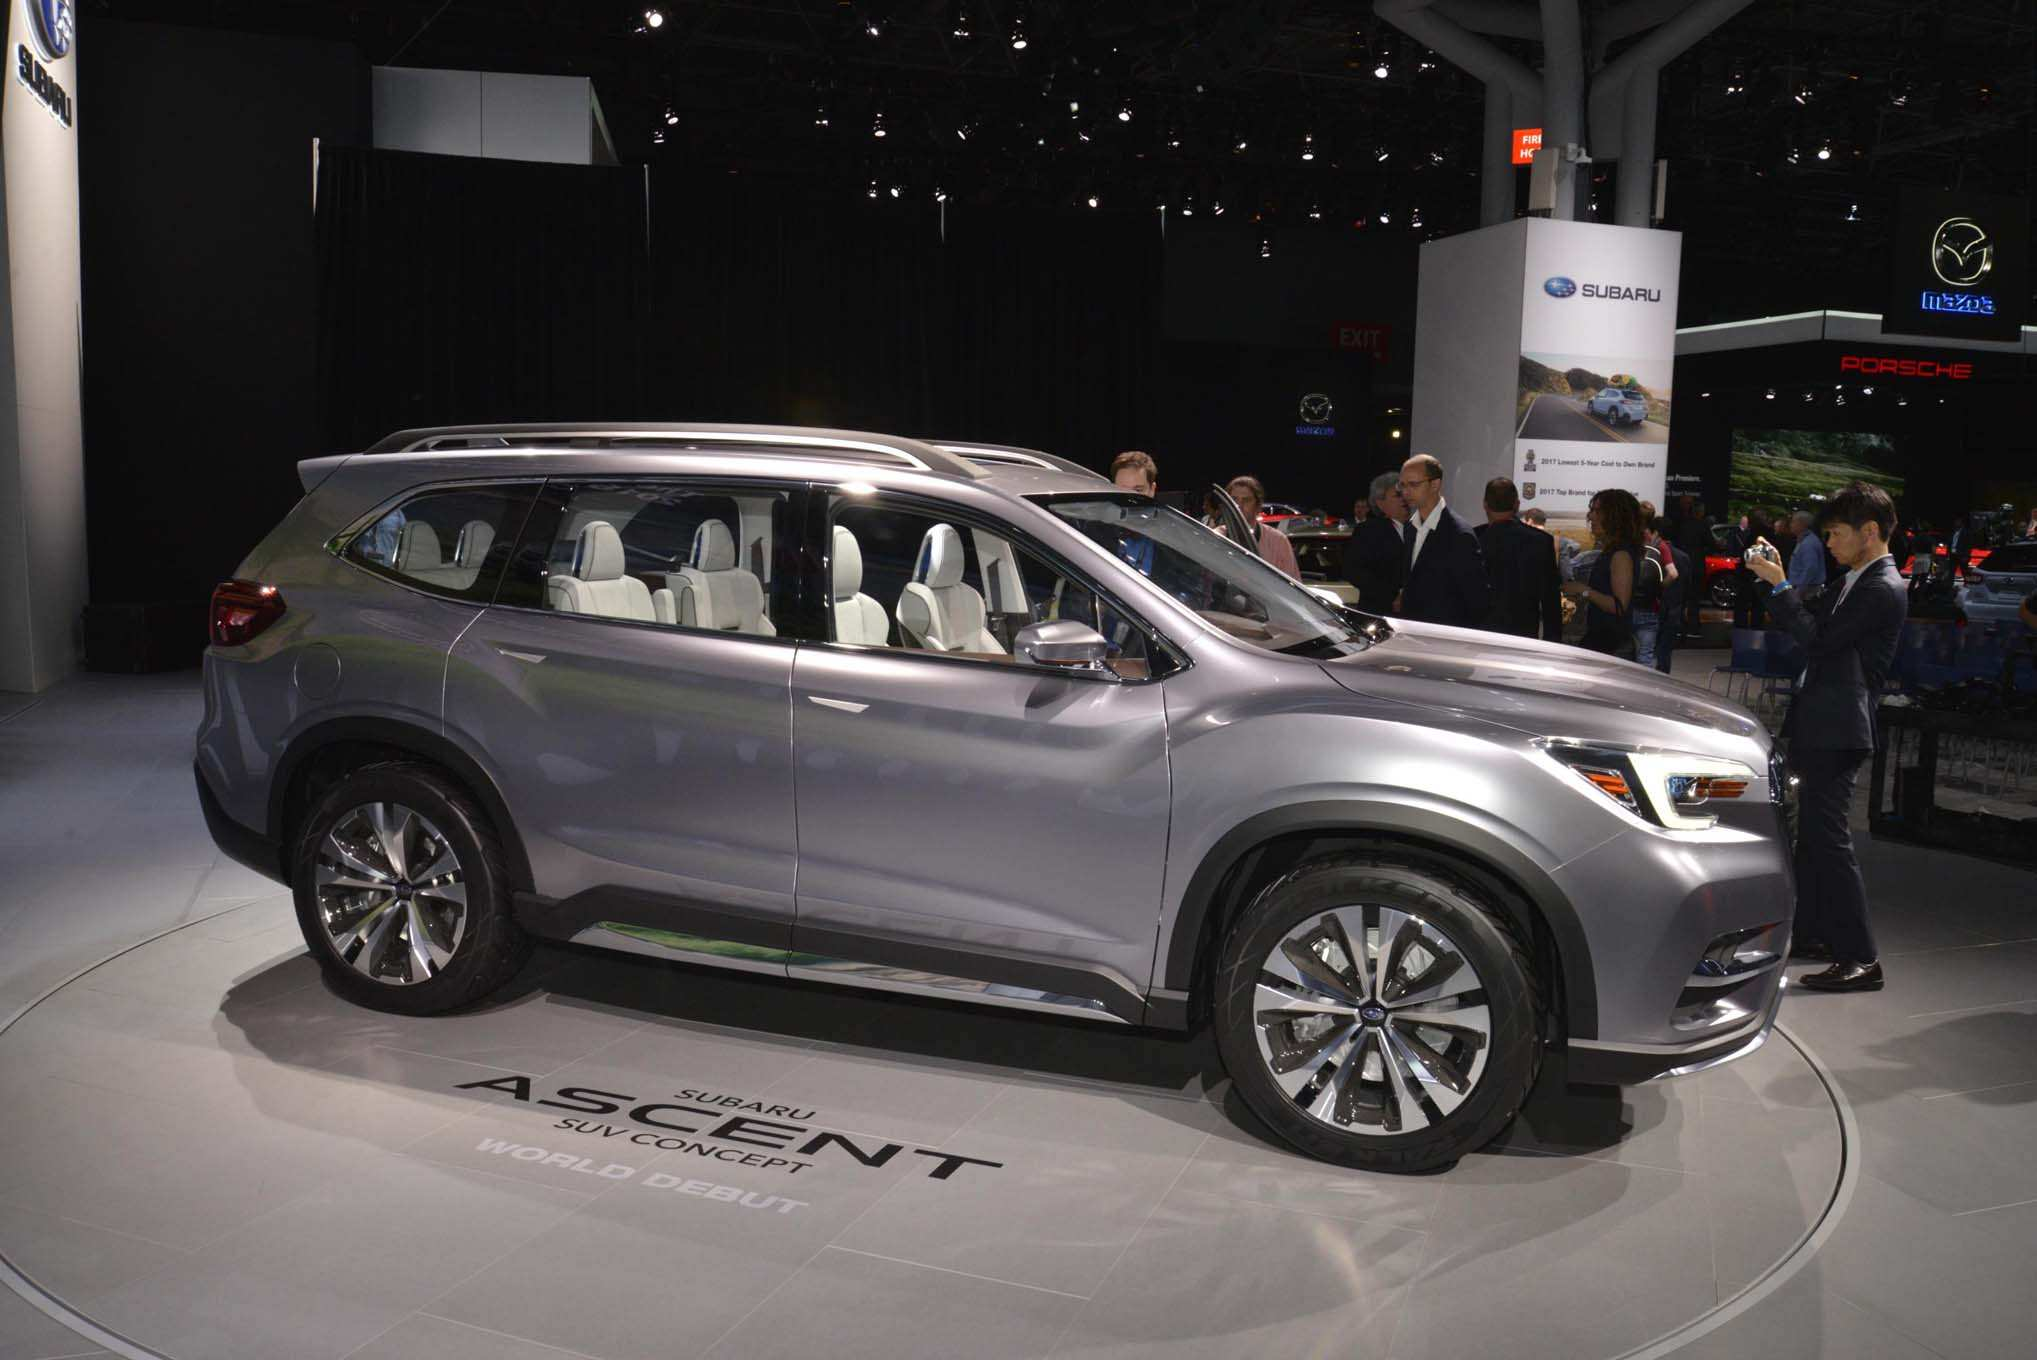 42 Best Review 2019 Subaru Ascent Towing Capacity Rumors with 2019 Subaru Ascent Towing Capacity